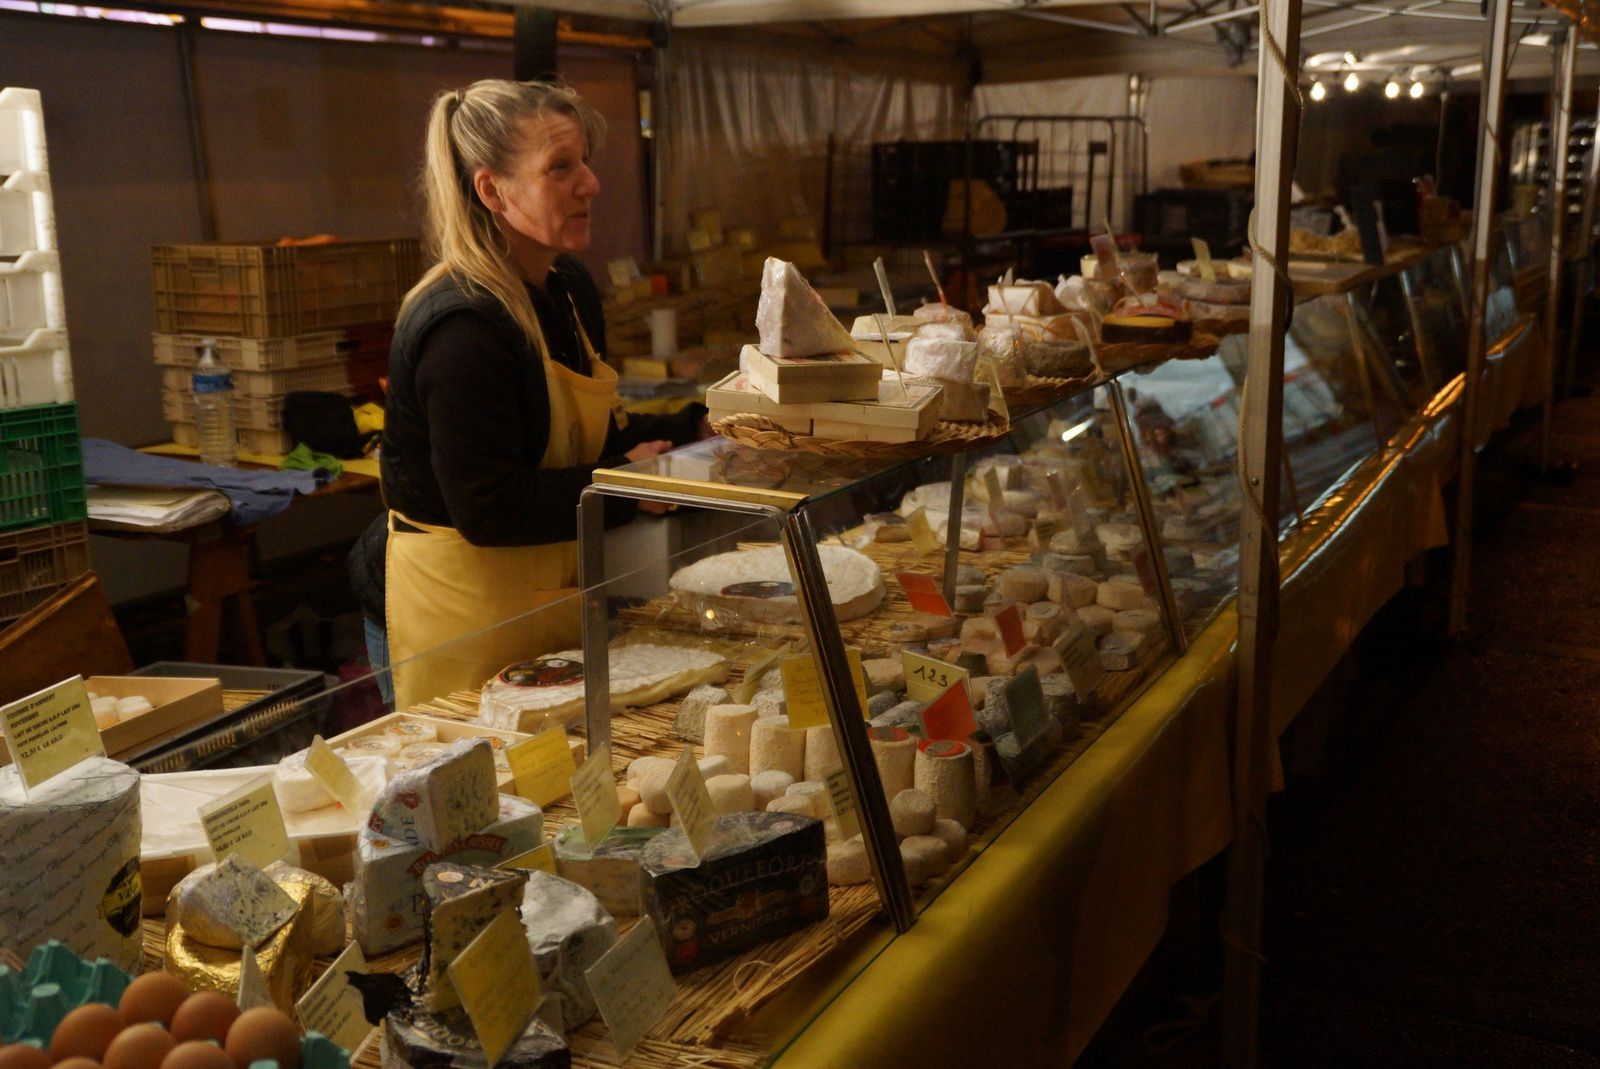 Fromagerie Guilbaux